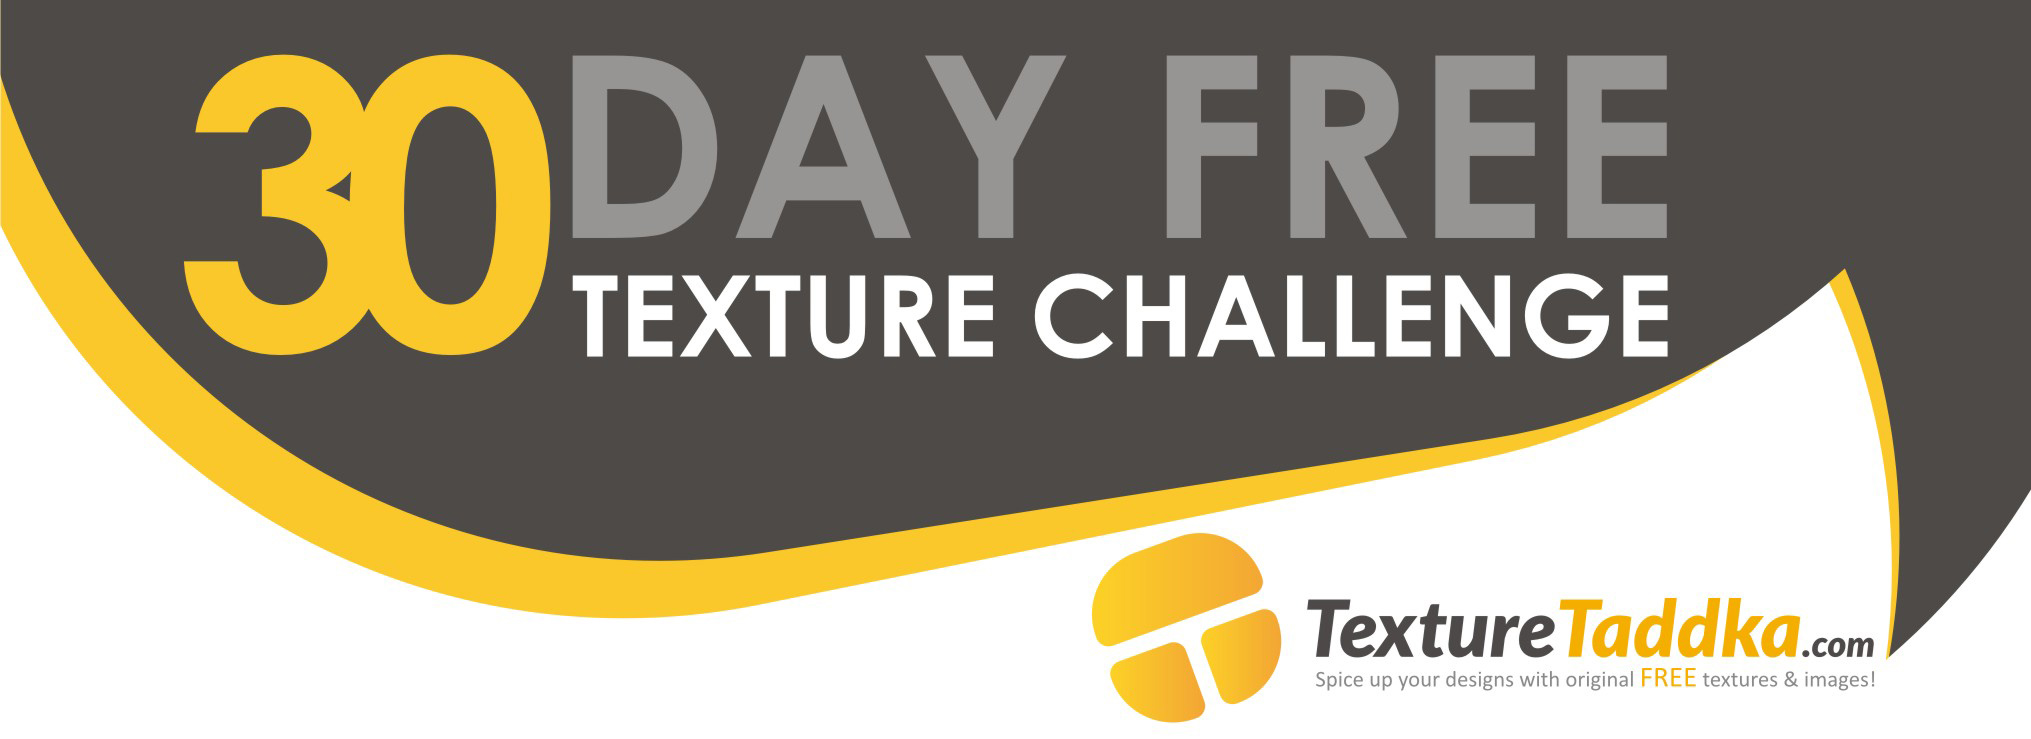 30 Day Free Texture Challenge